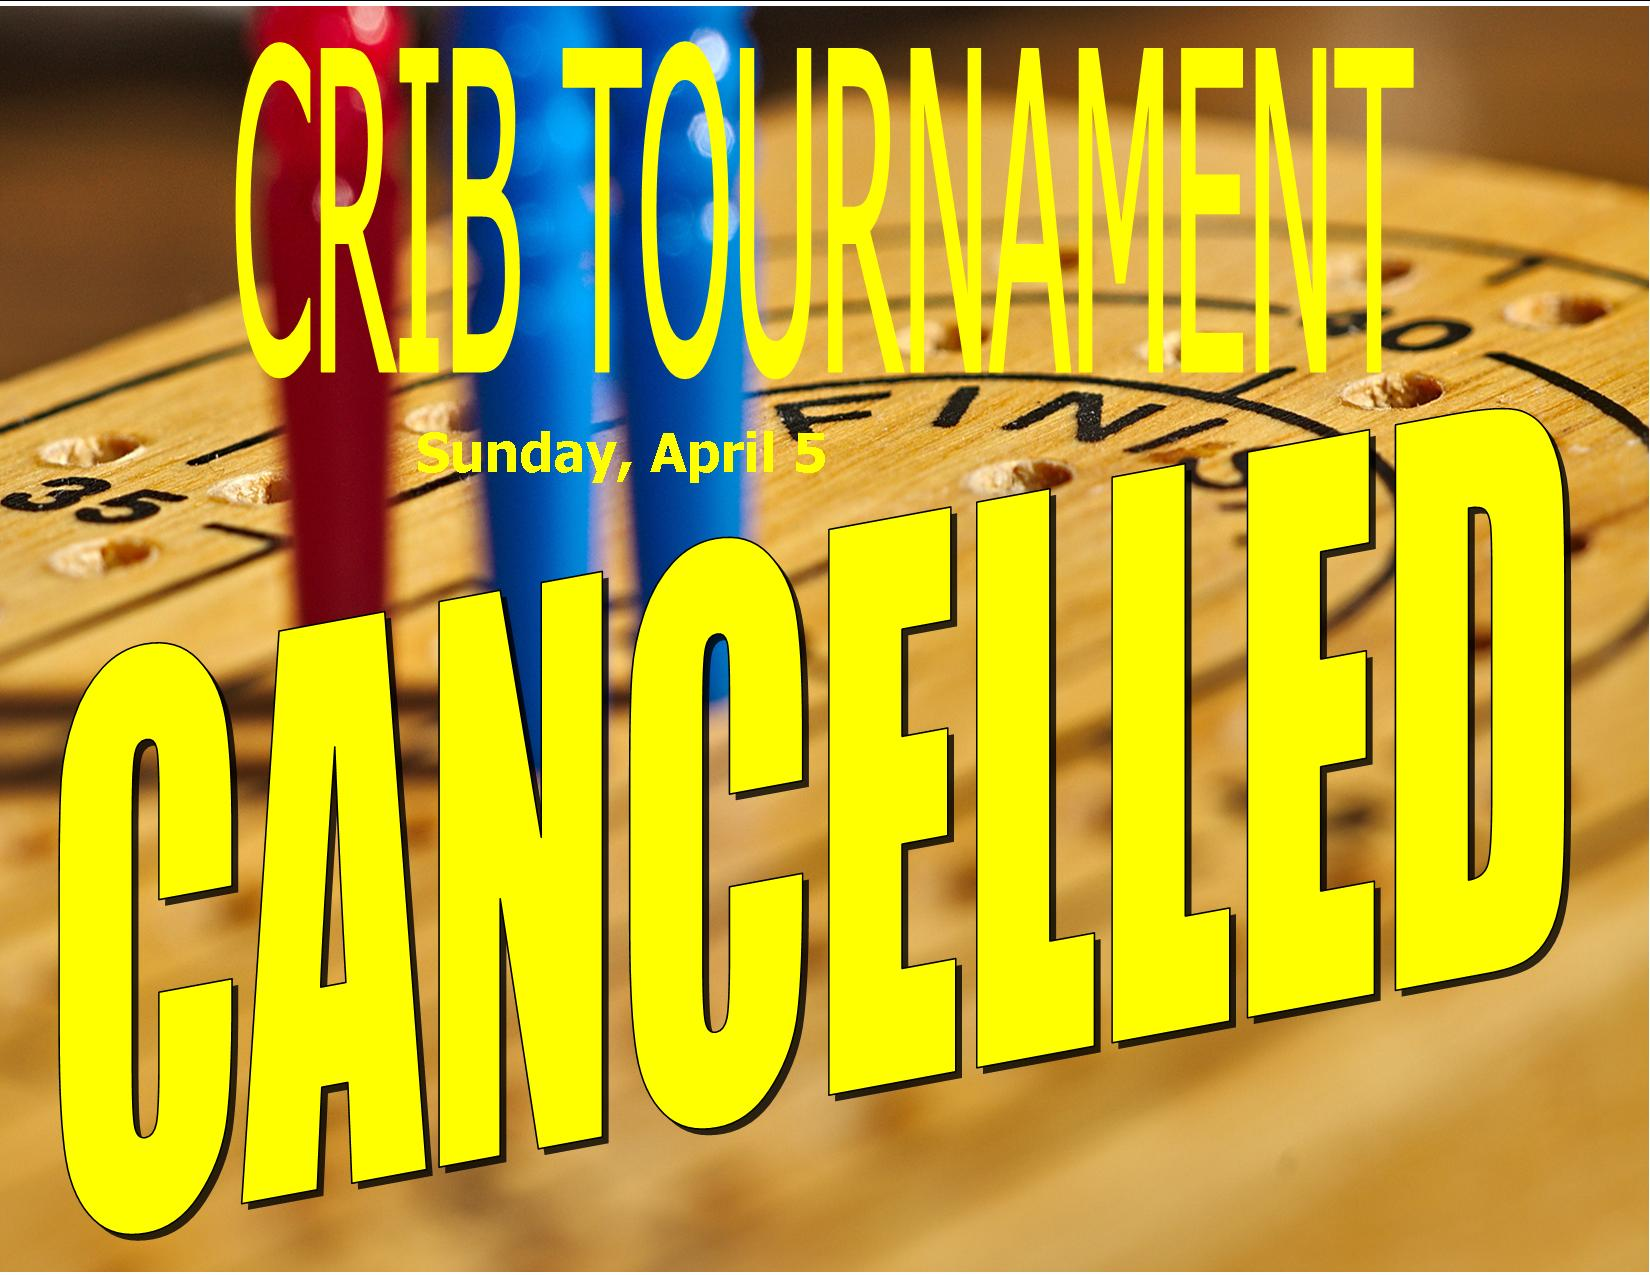 crib tourney Oct 2019 CANCELLED